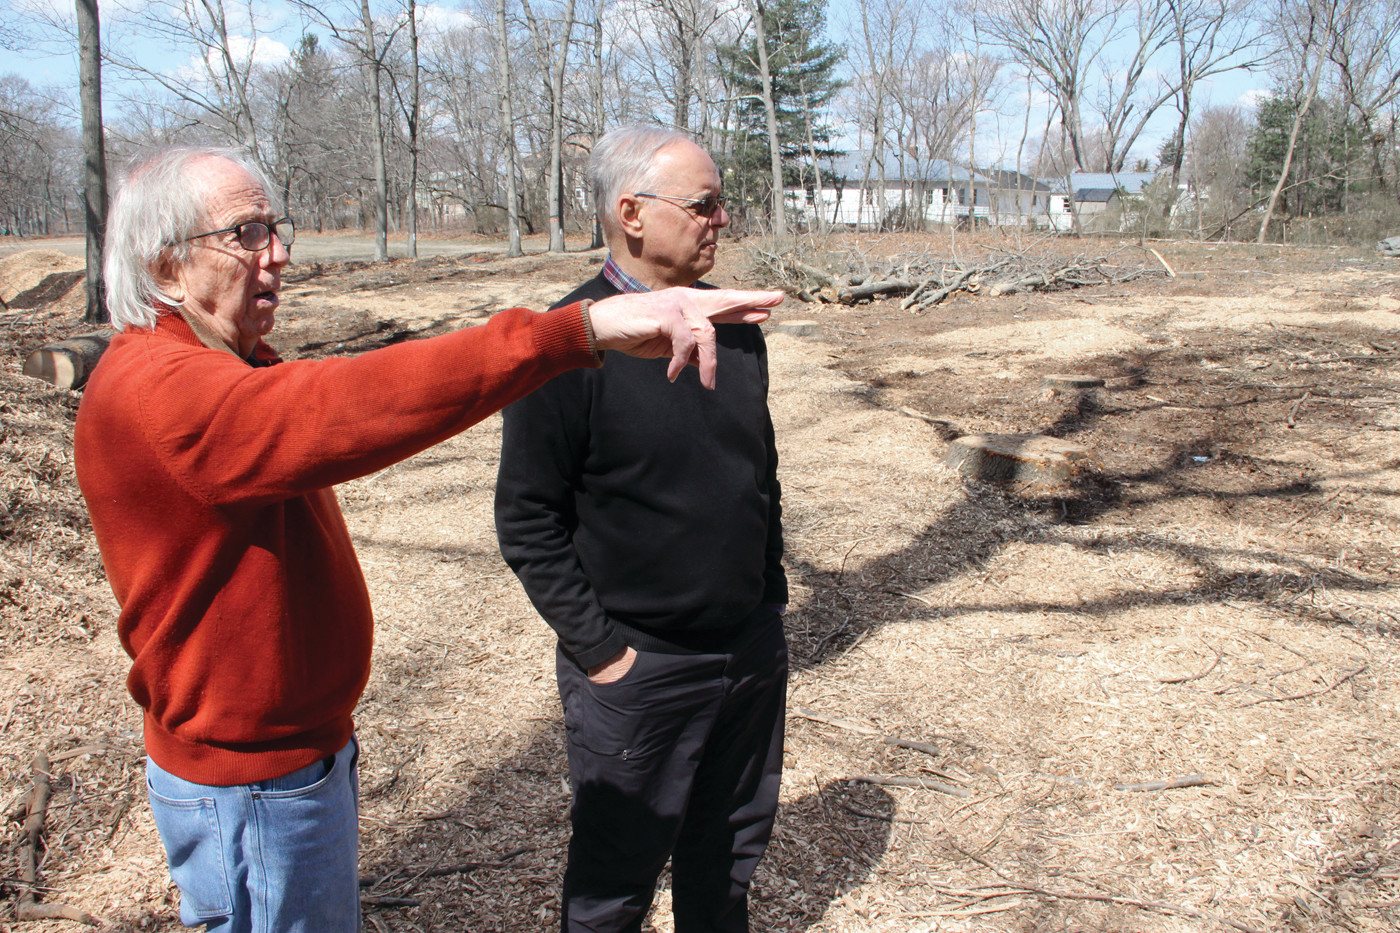 MISSING TREES: Maury Ryan and Tom Wisniewski look at the cleared lot across from their homes on Landsdowne Road, where more than 40 trees were cut down last week.